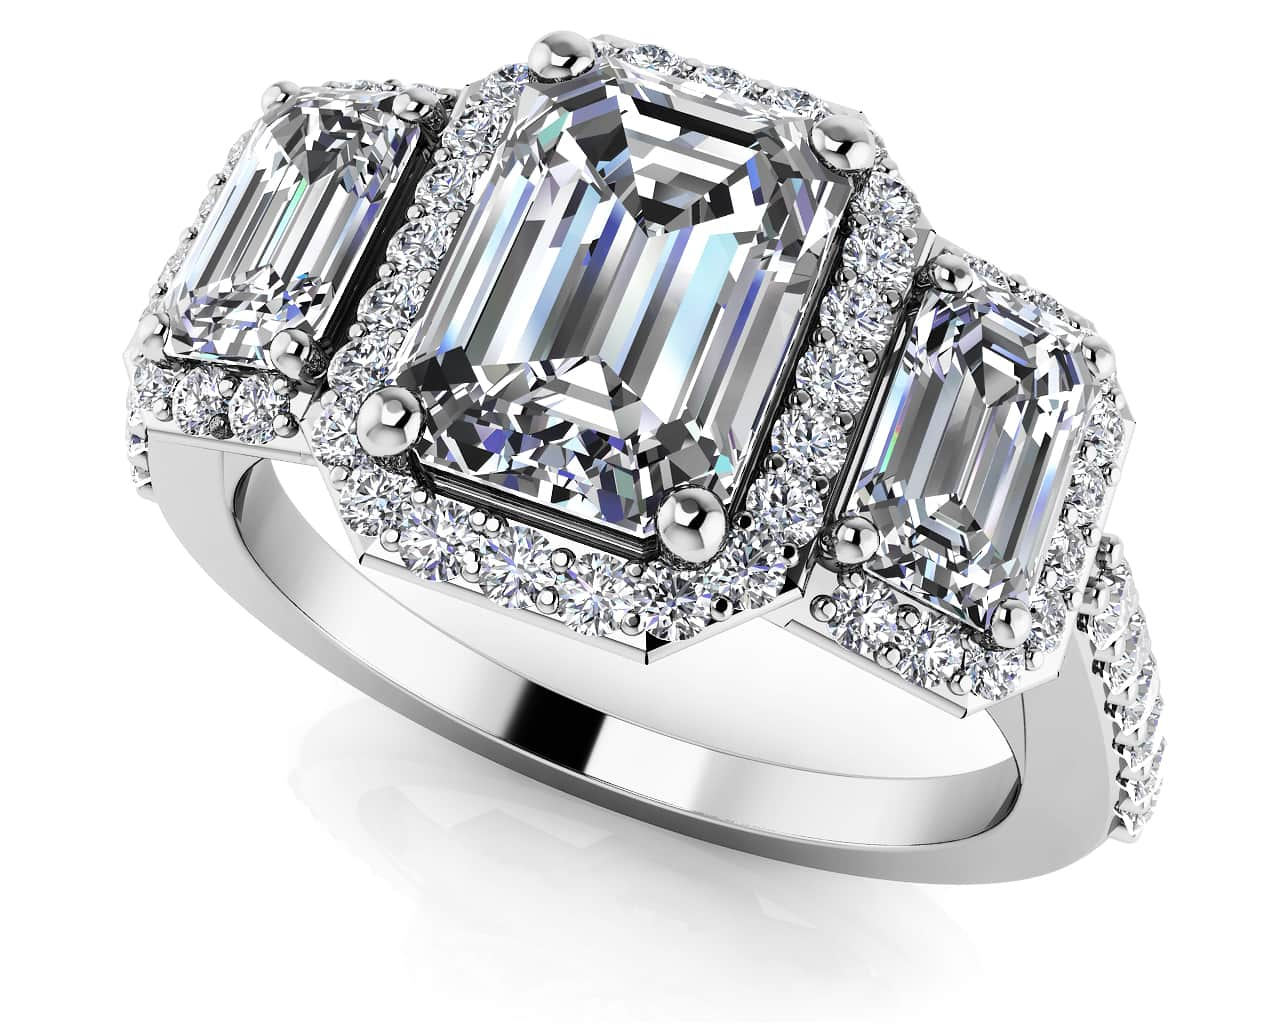 Sparkling Three Stone Emerald Cut Engagement Ring In Platinum Or Gold